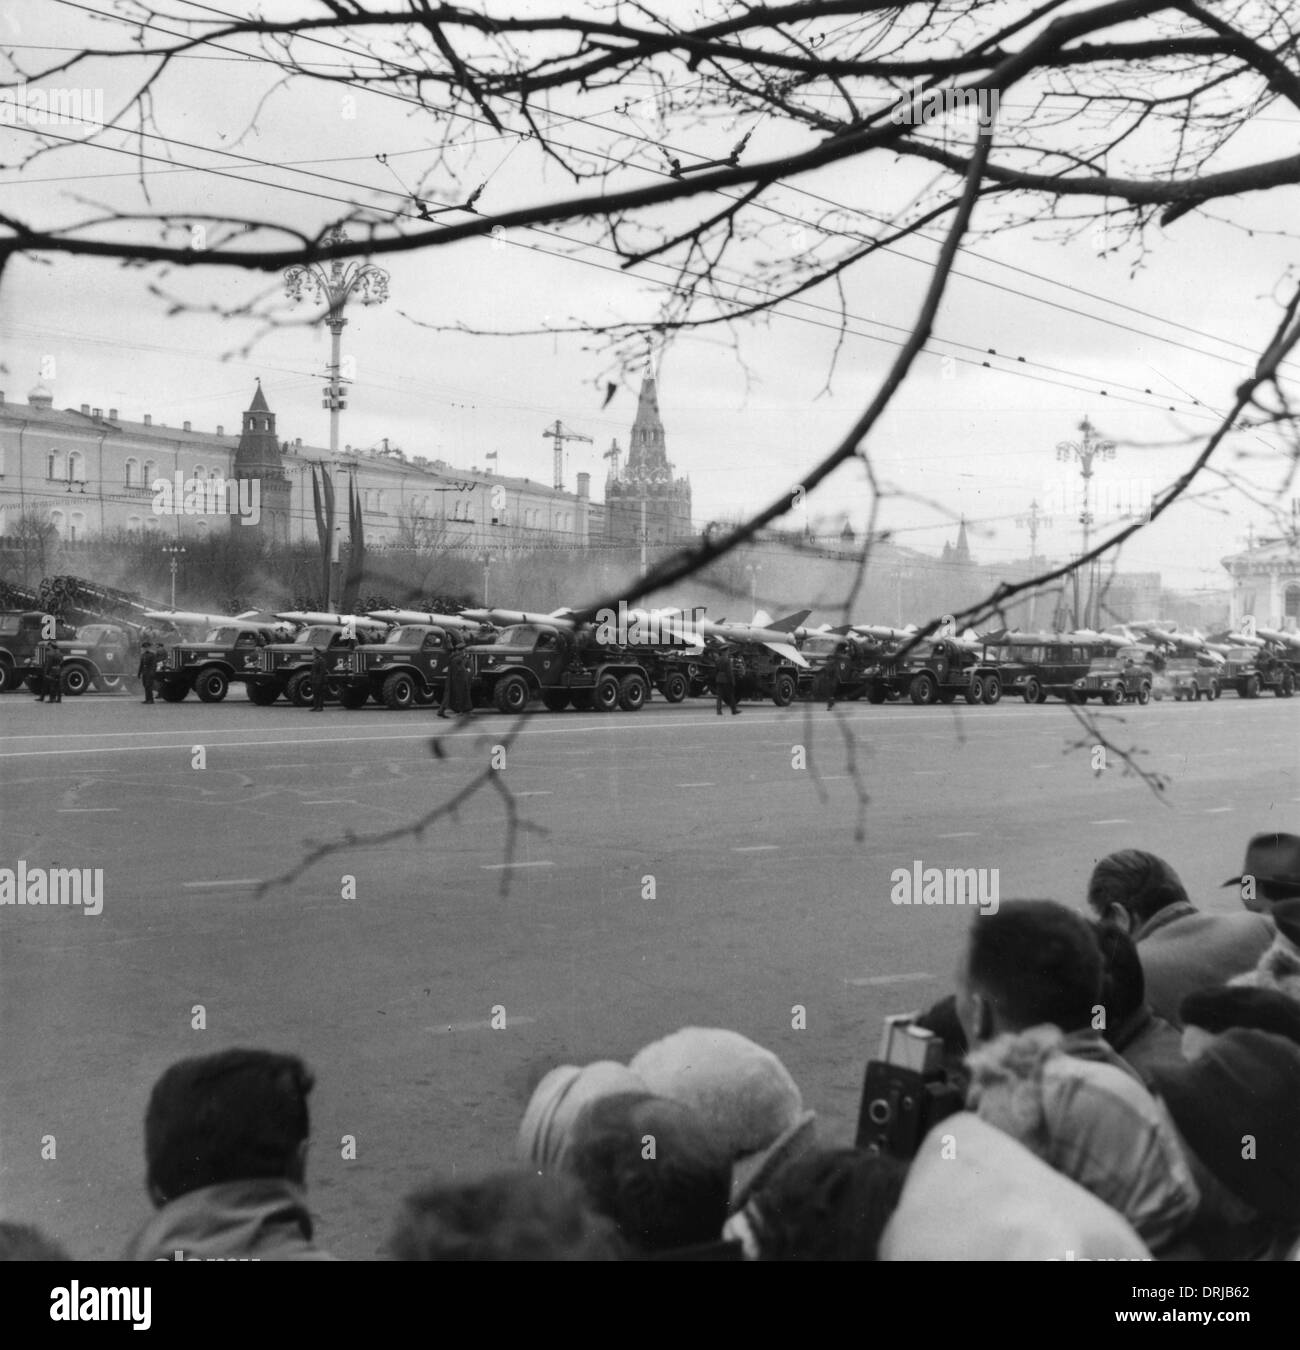 Parade of weapons, Moscow, Russia - Stock Image